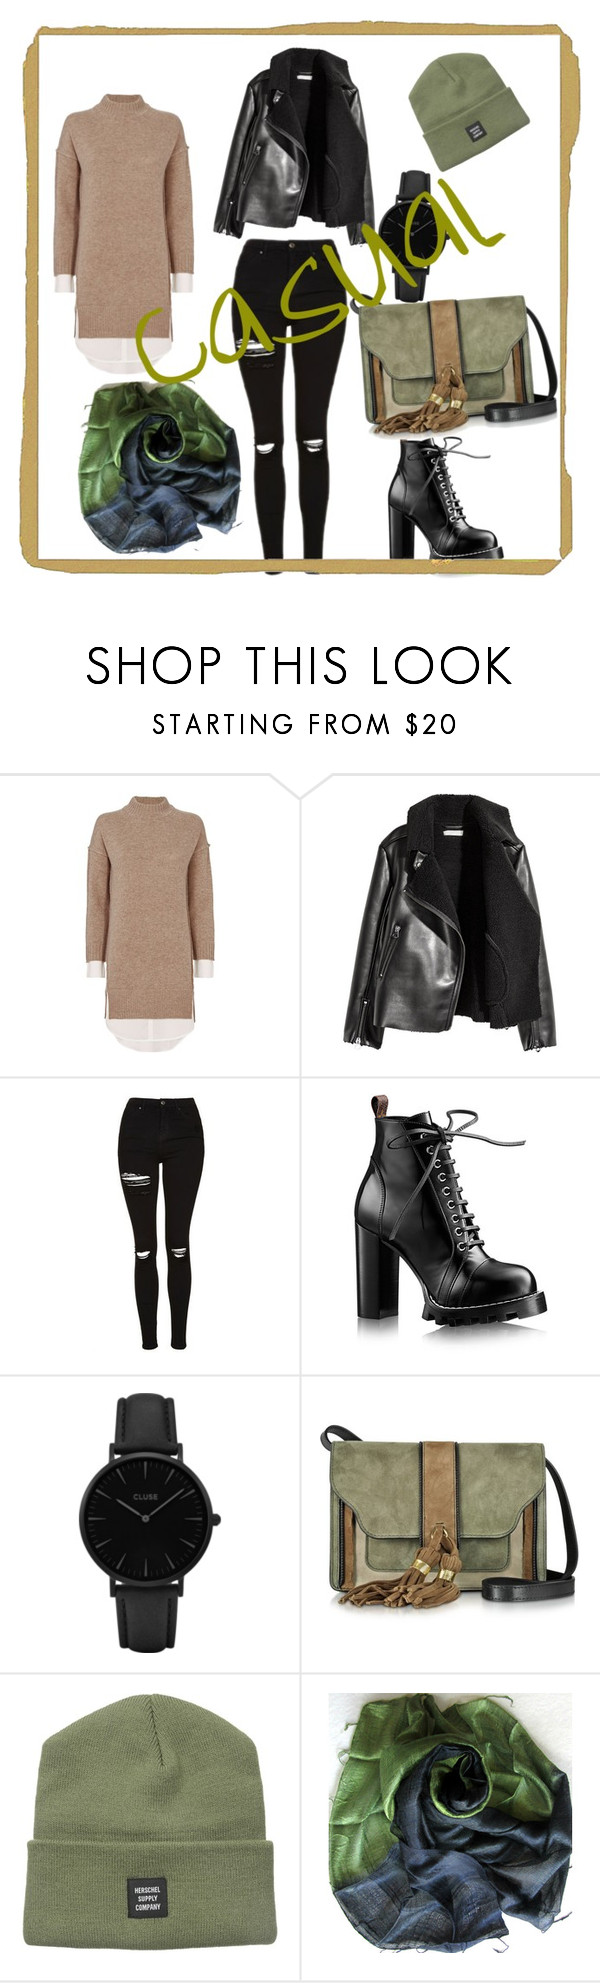 """""""Casual"""" by ec300 ❤ liked on Polyvore featuring Brochu Walker, H&M, Topshop, CLUSE, L'Autre Chose and Herschel Supply Co."""